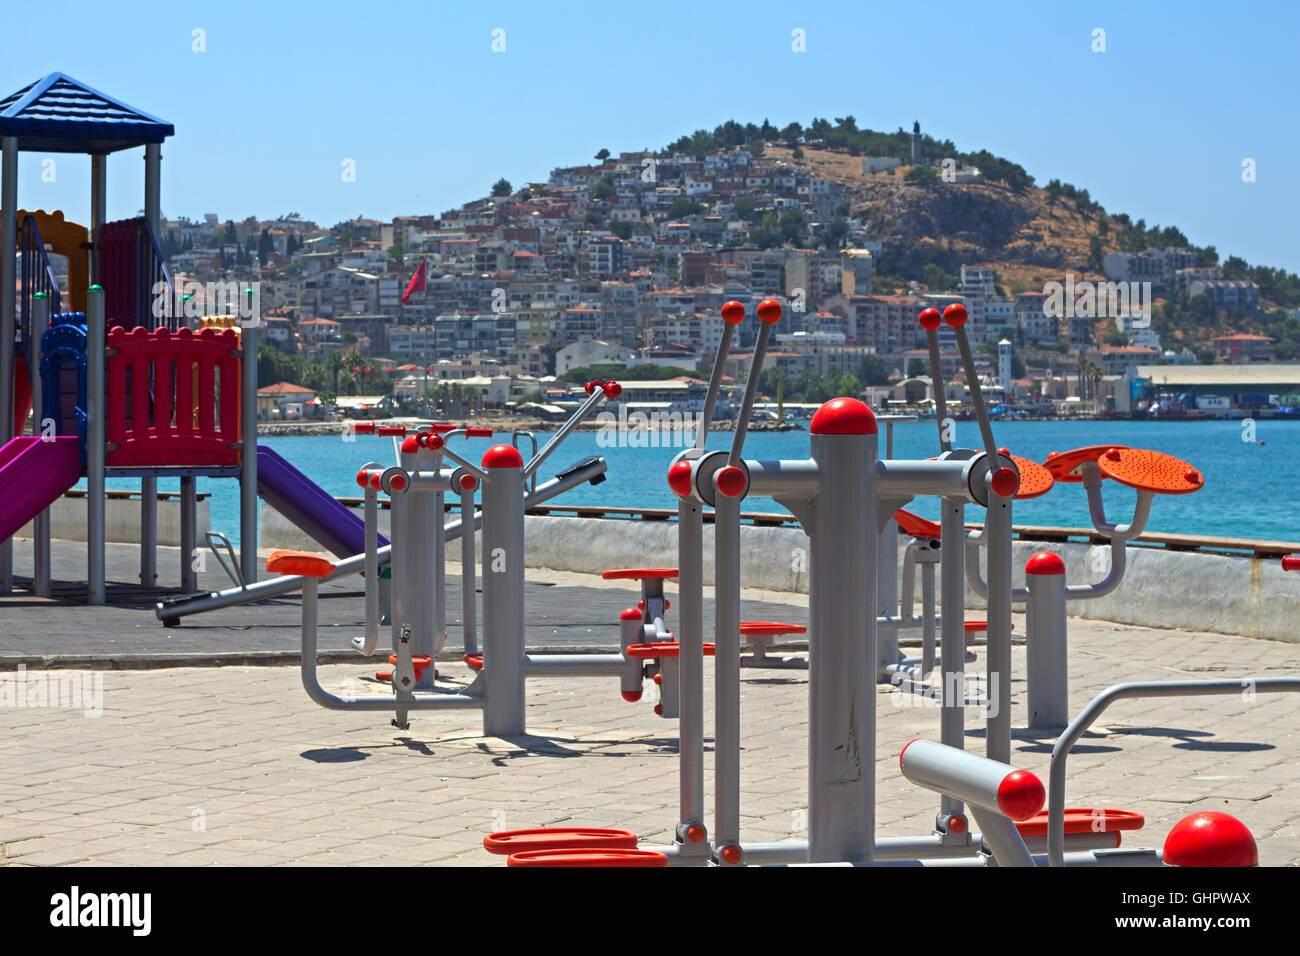 Keep fit equipment on the promenade in Kusadasi Turkey, installed as part of a health initiative by the local council - Stock Image